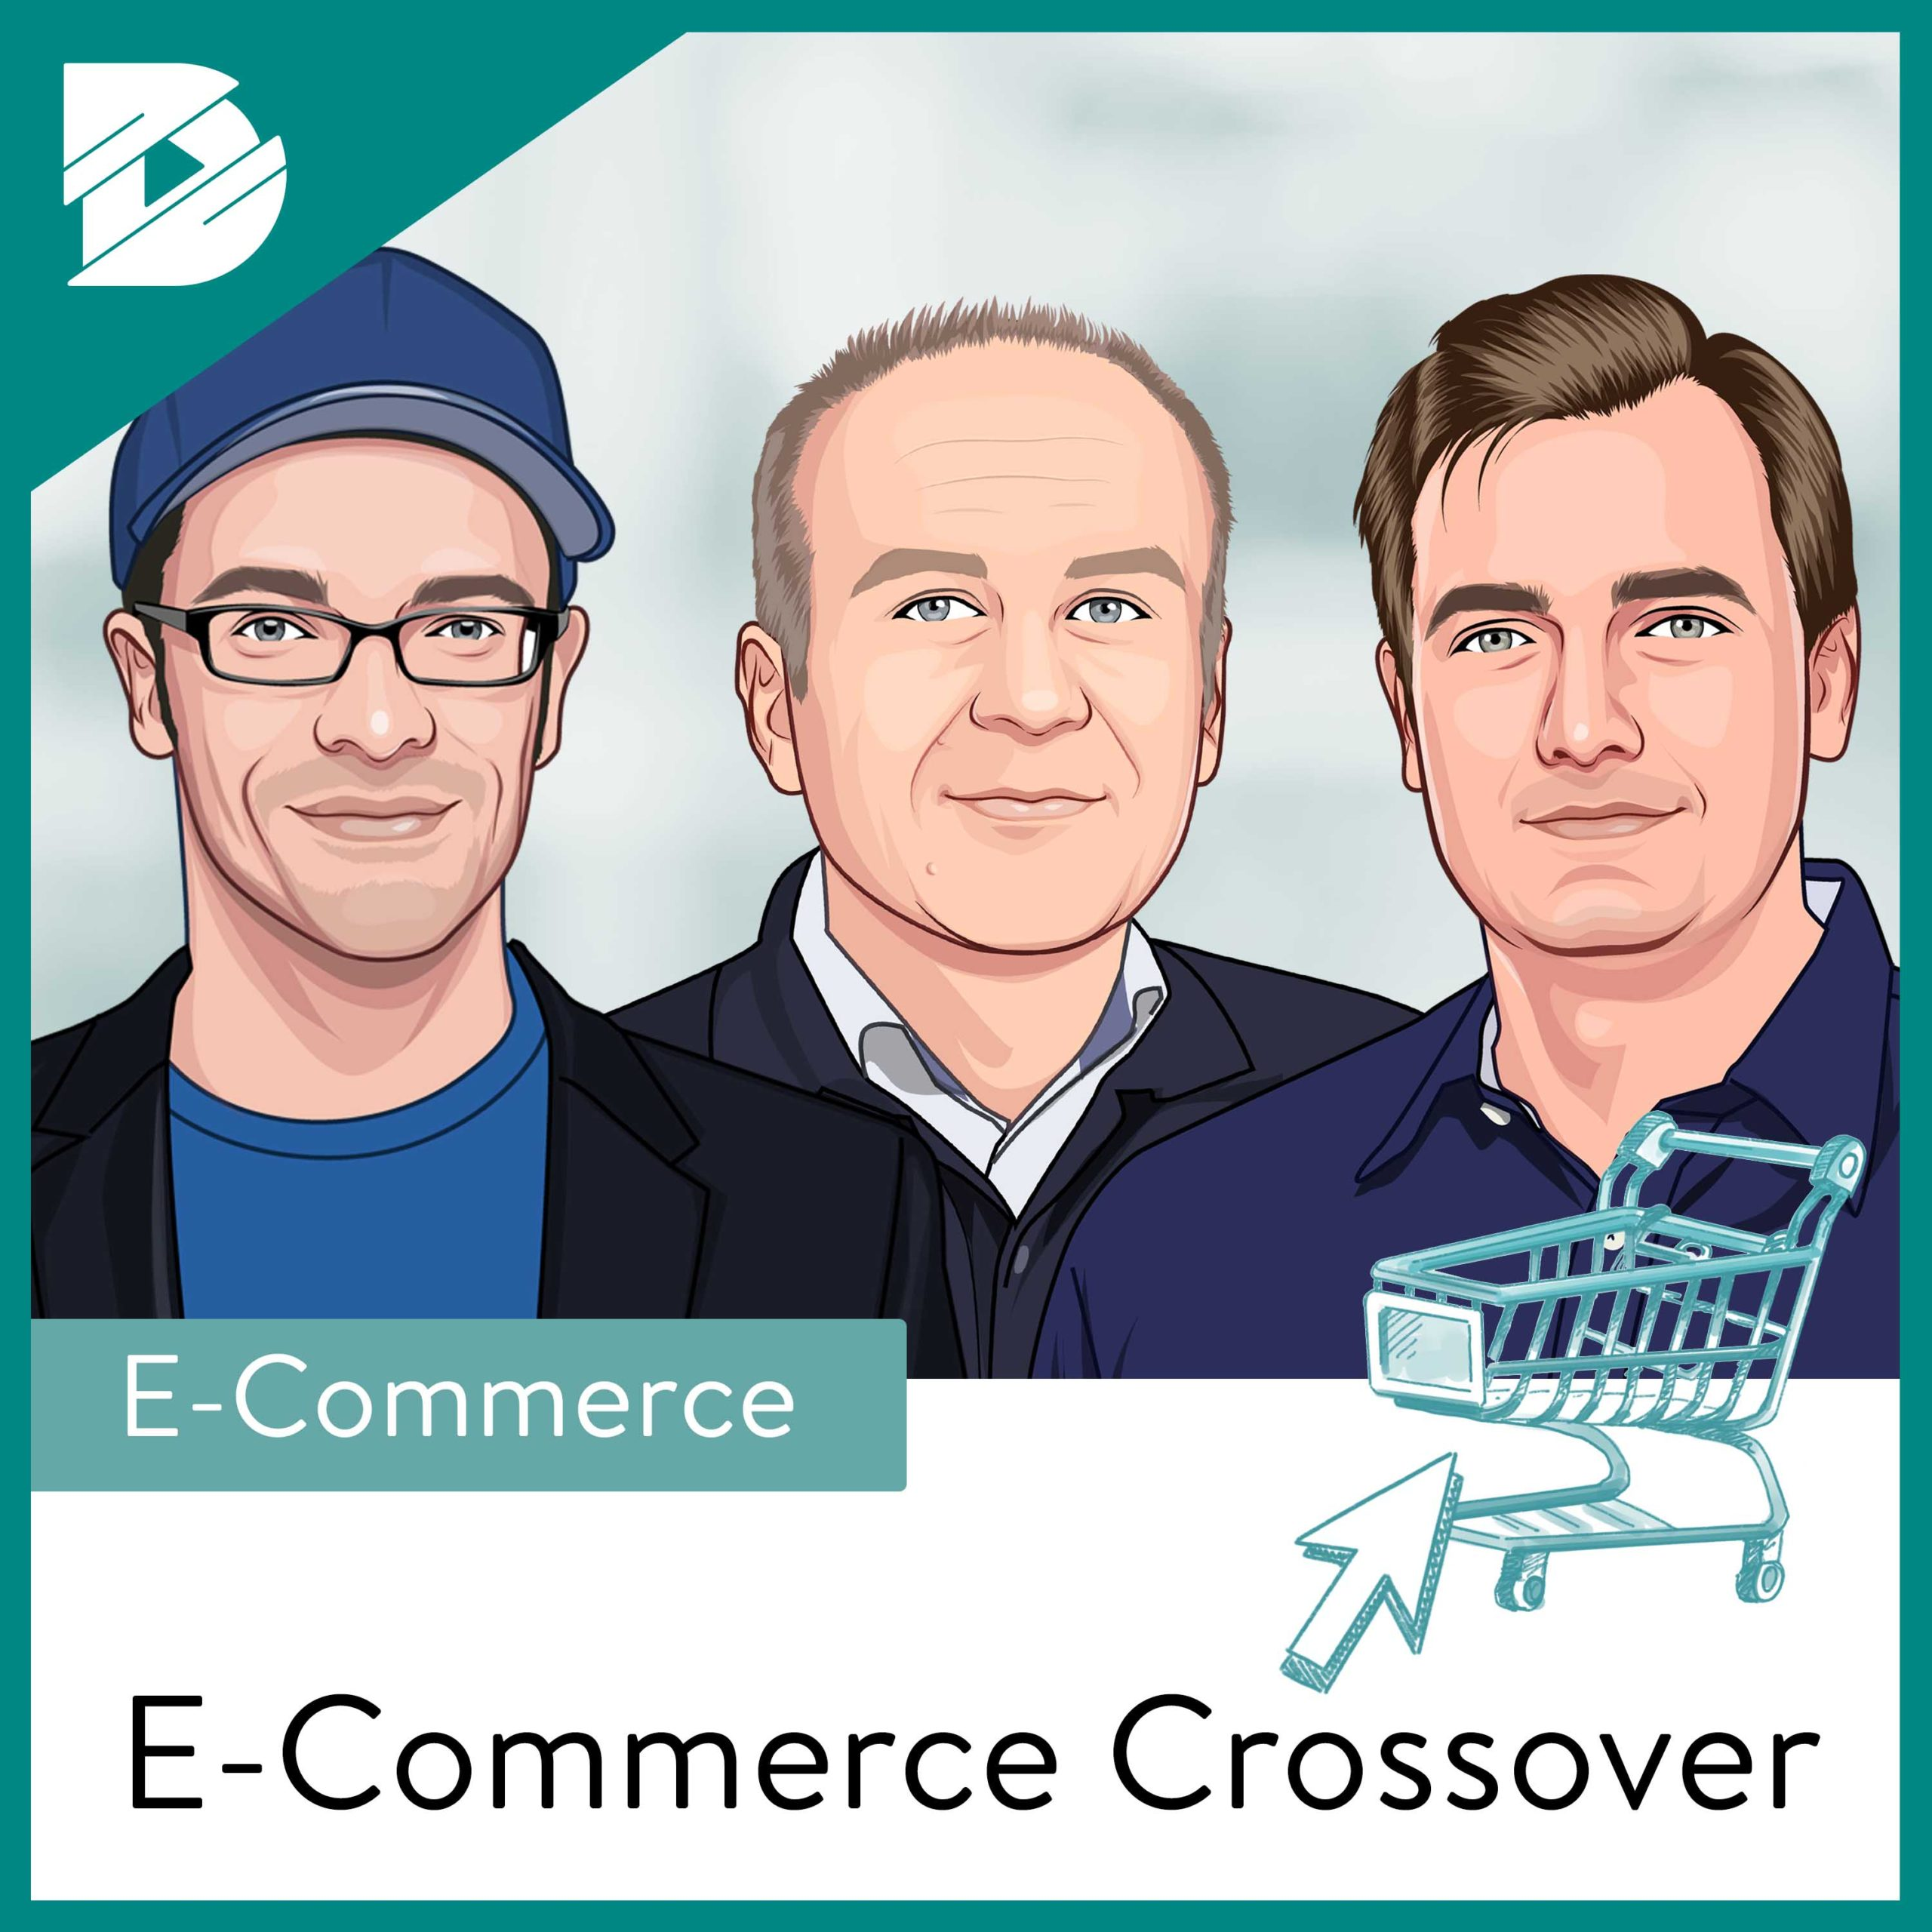 E-Commerce Crossover